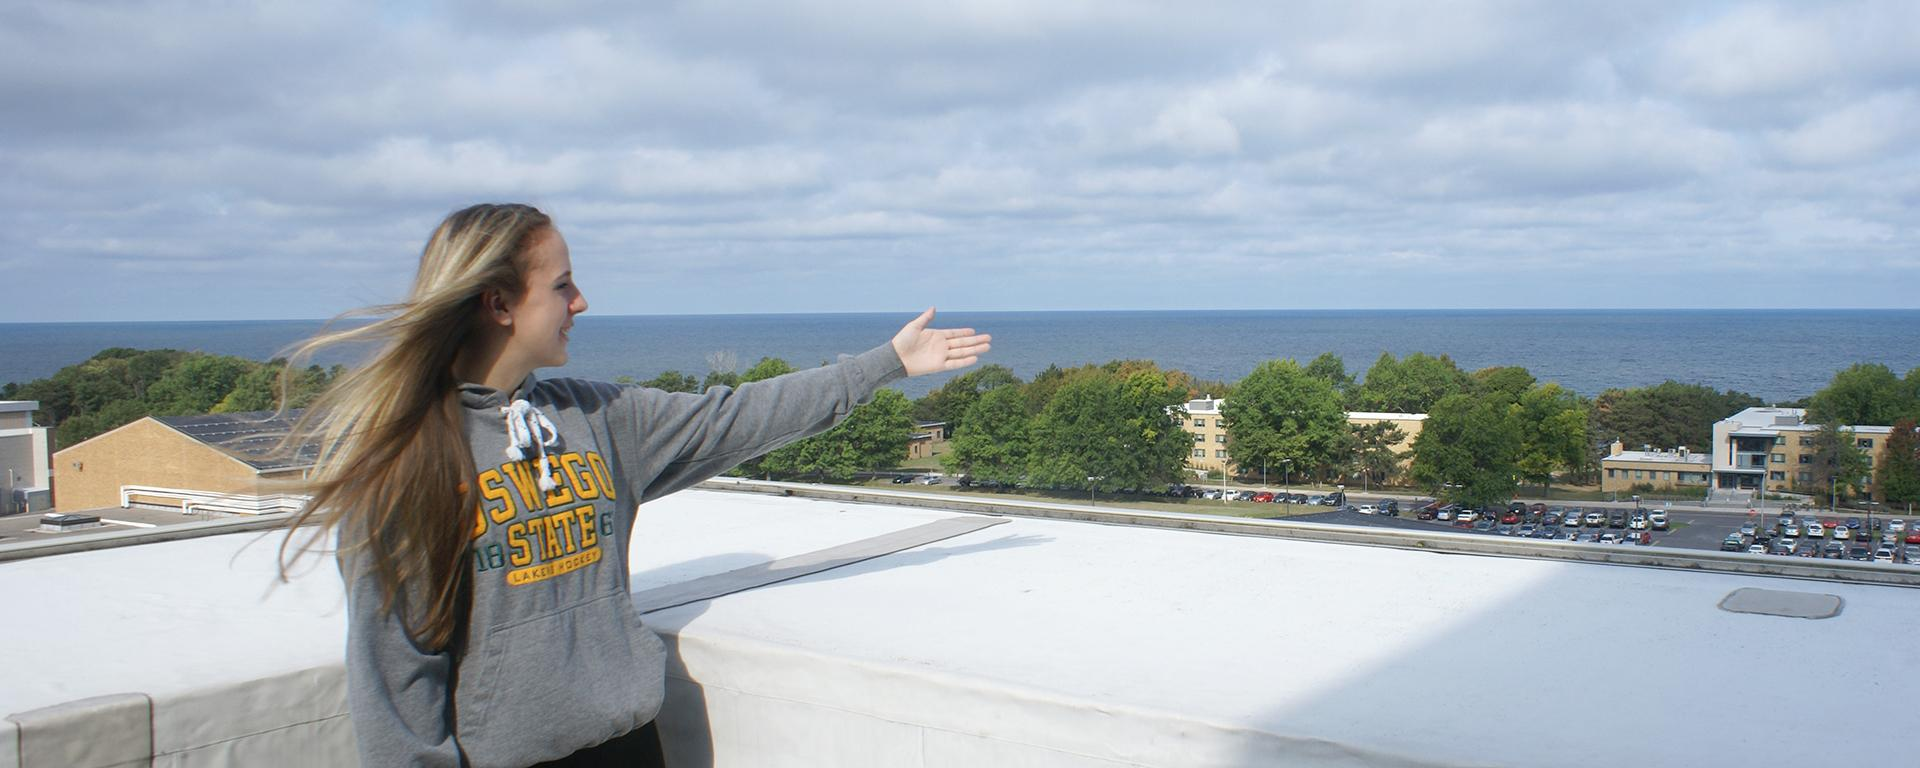 Student tour guide gestures toward campus